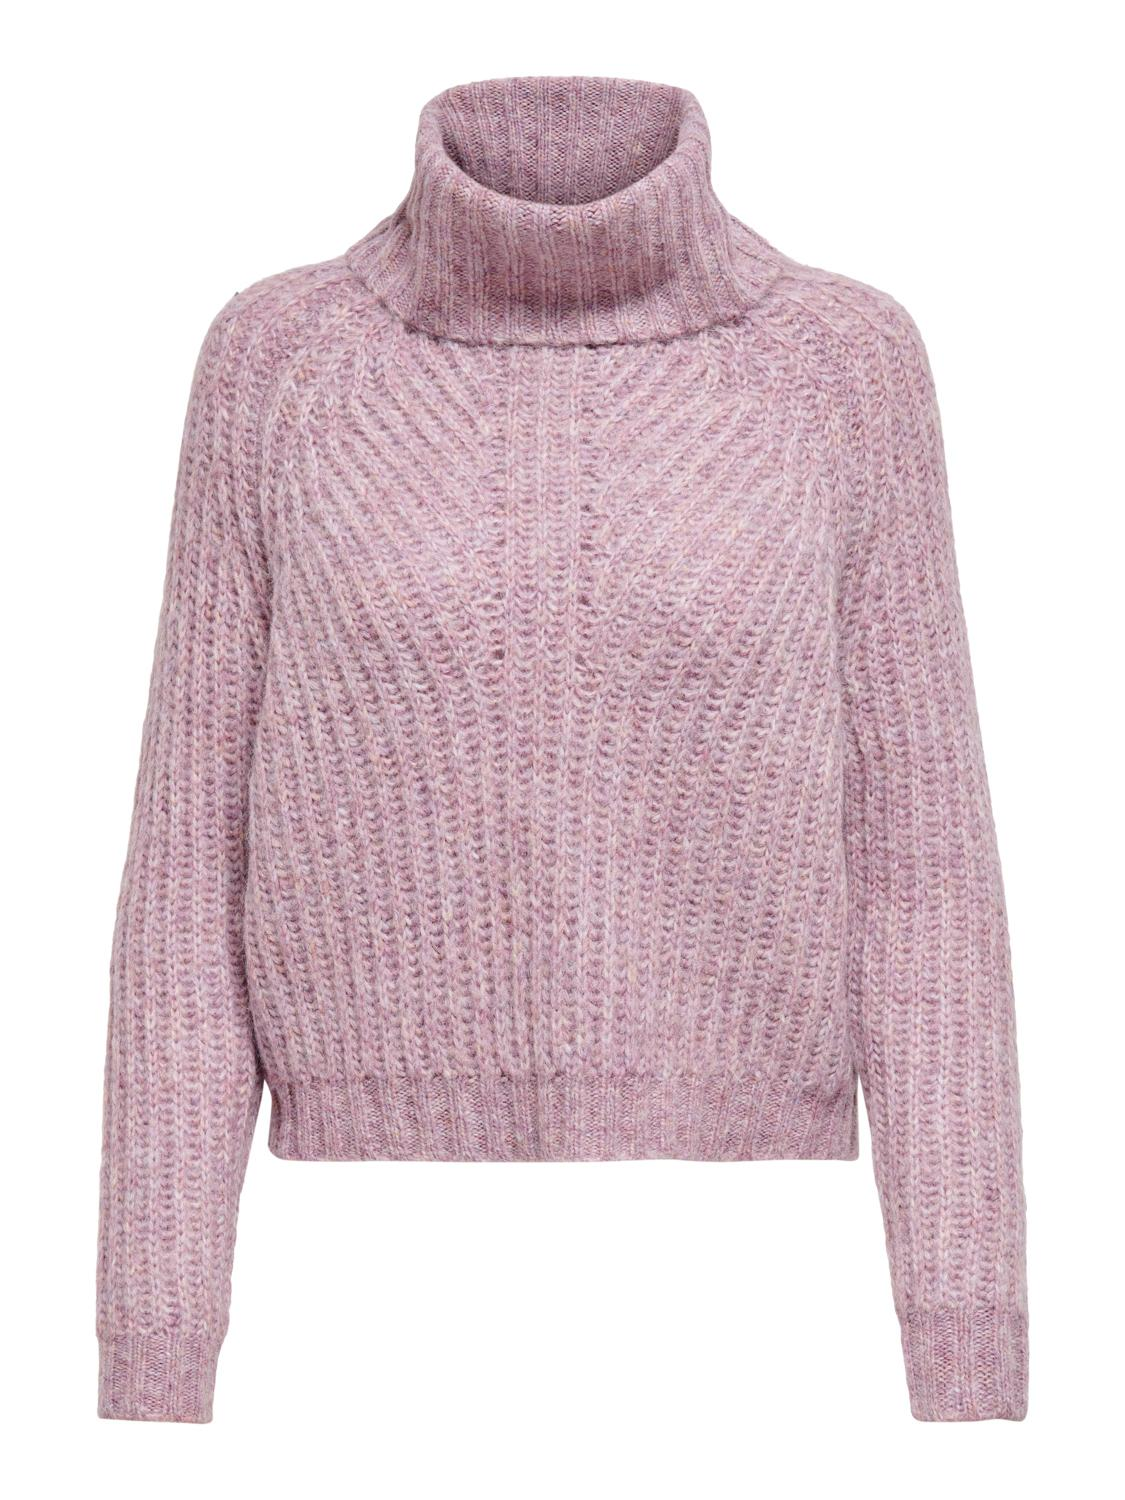 ONLNEW CHUNKY L/S ROLLNECK PULLOVER